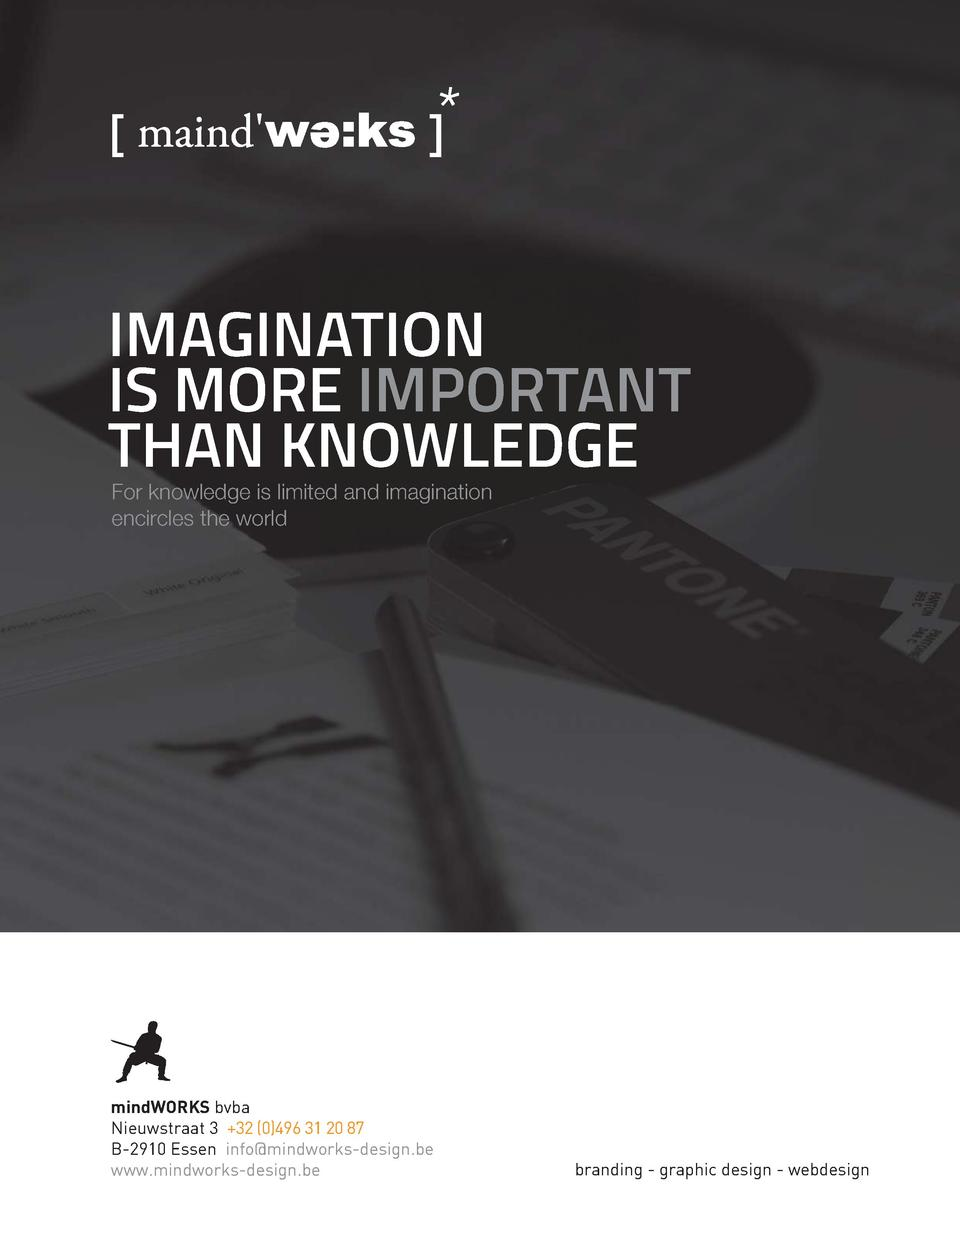 202  IMAGINATION IS MORE IMPORTANT THAN KNOWLEDGE For knowledge is limited and imagination encircles the world  mindWORKS ...